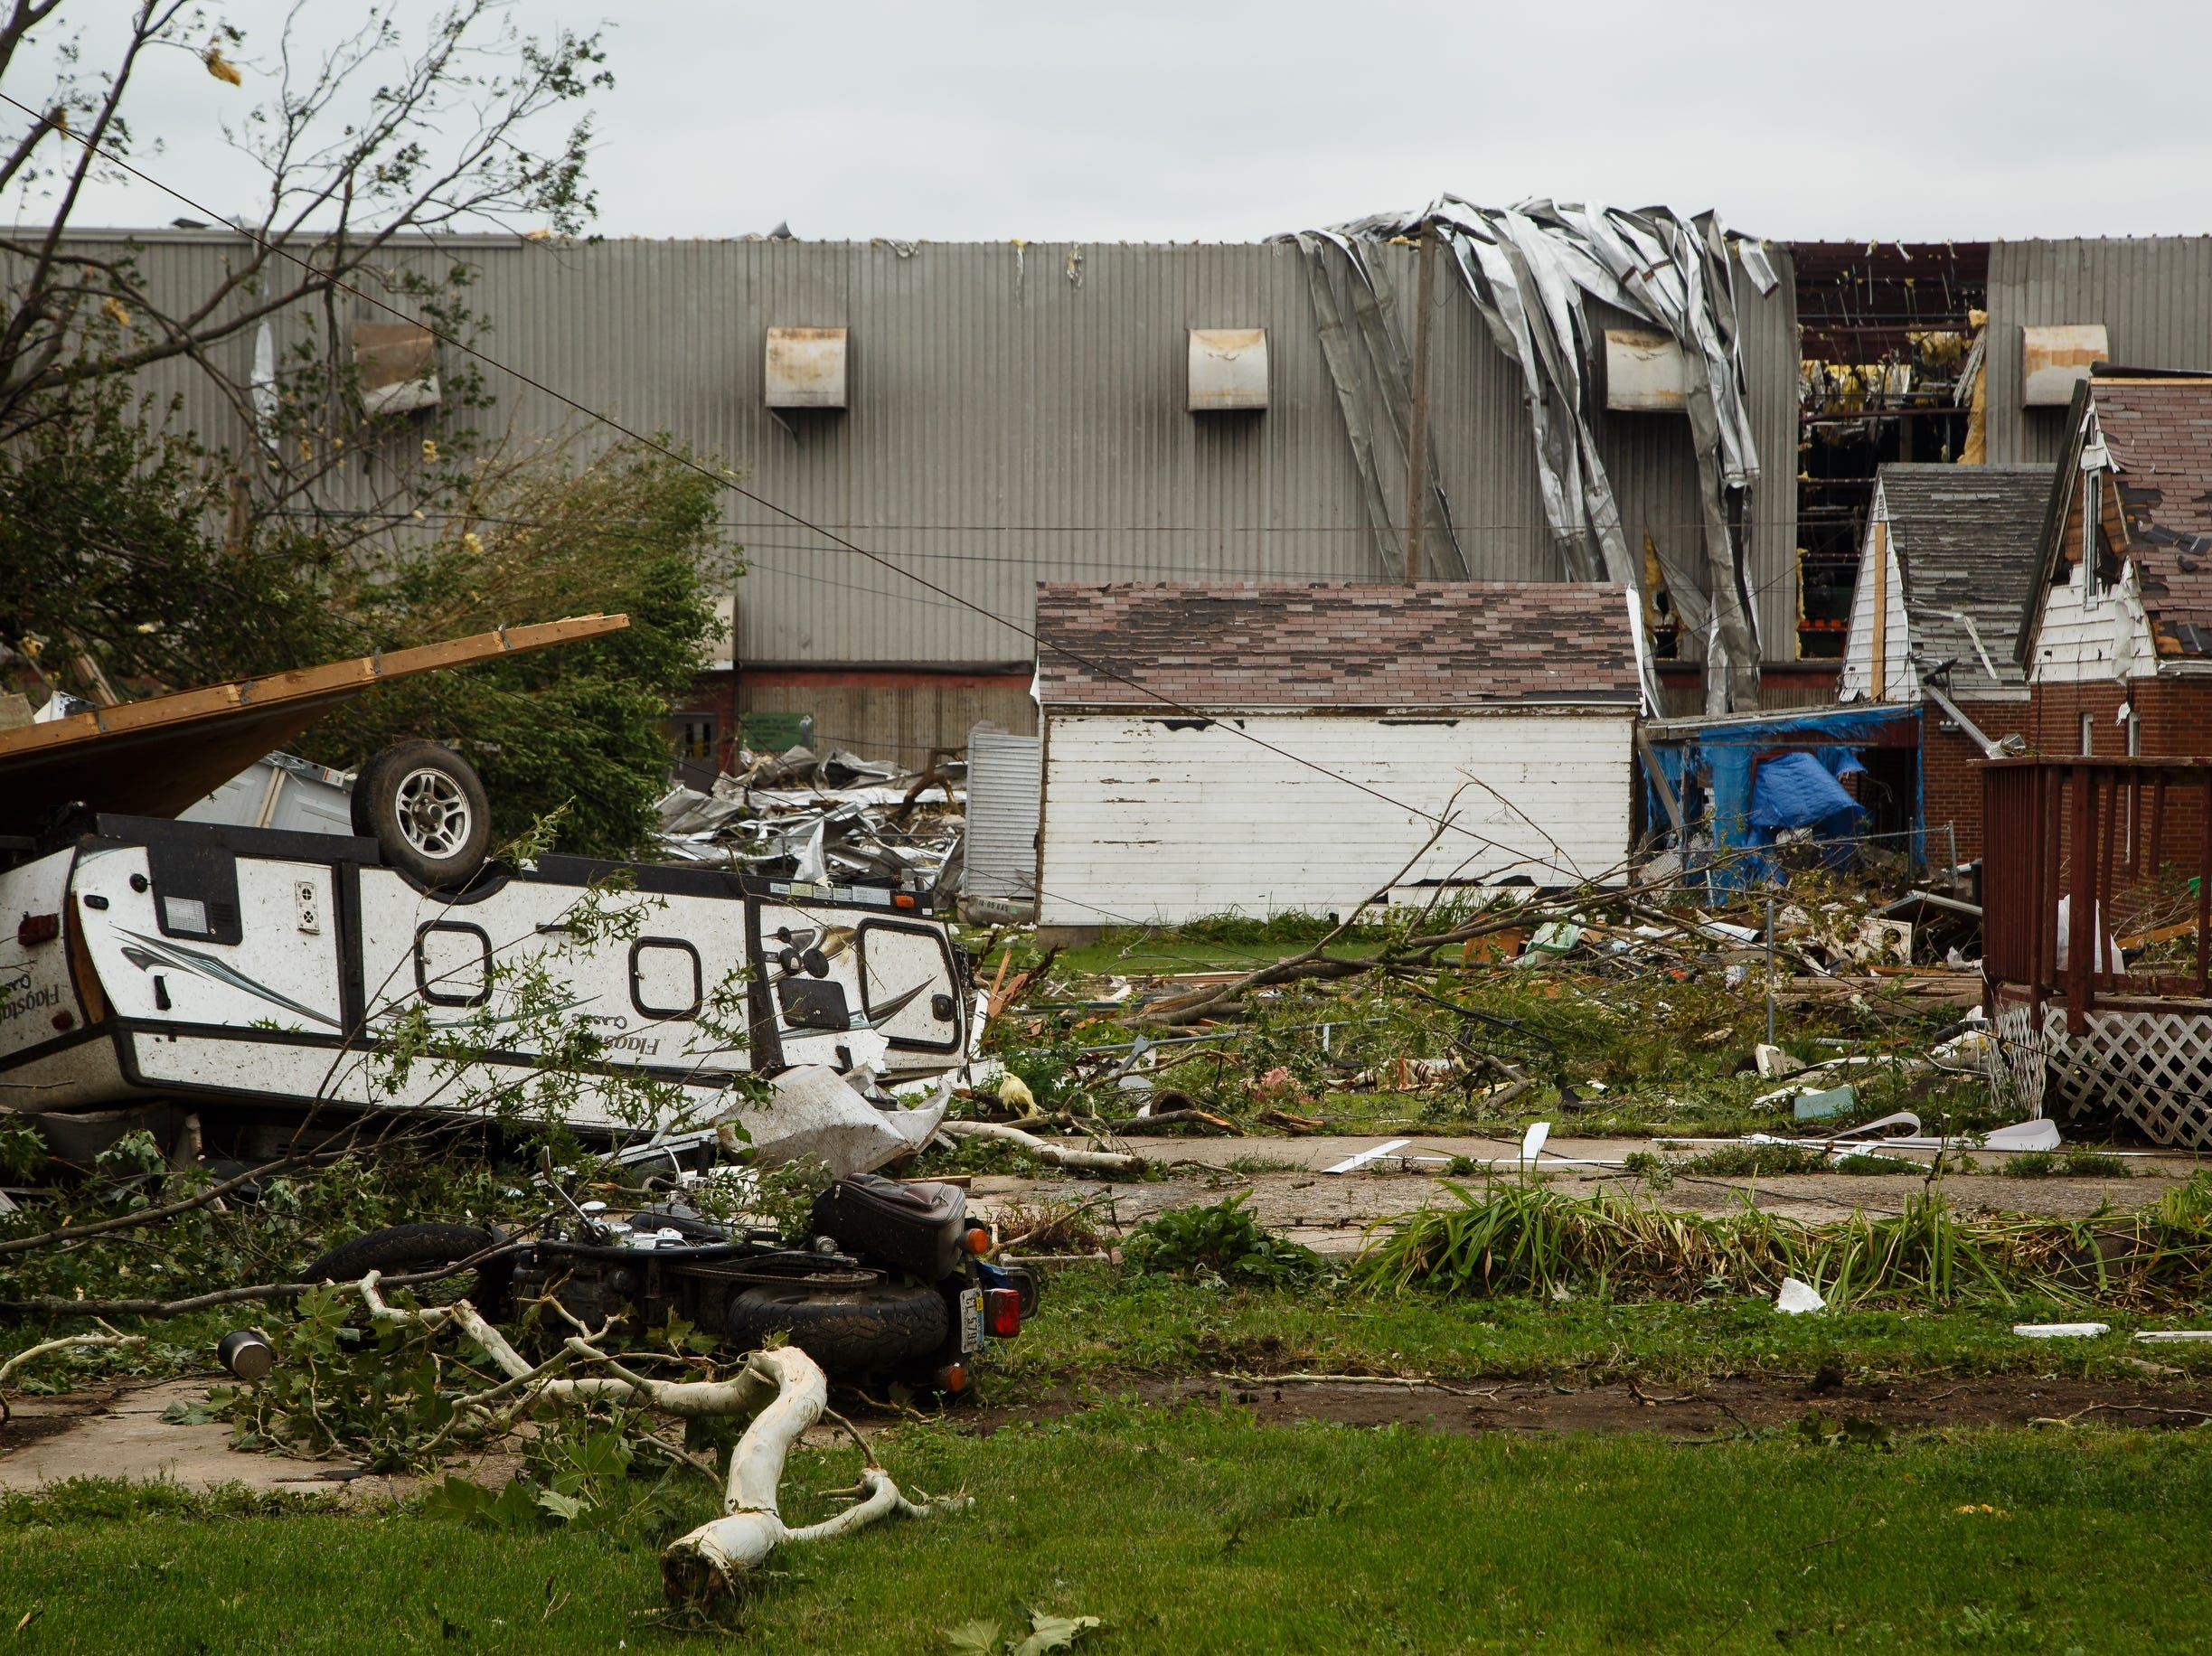 Clean up continues in Marshalltown near the Lennox plant on Friday, July 20, 2018. Yesterday, tornadoes ripped through central Iowa causing major damage but only minor injuries have been reported so far.